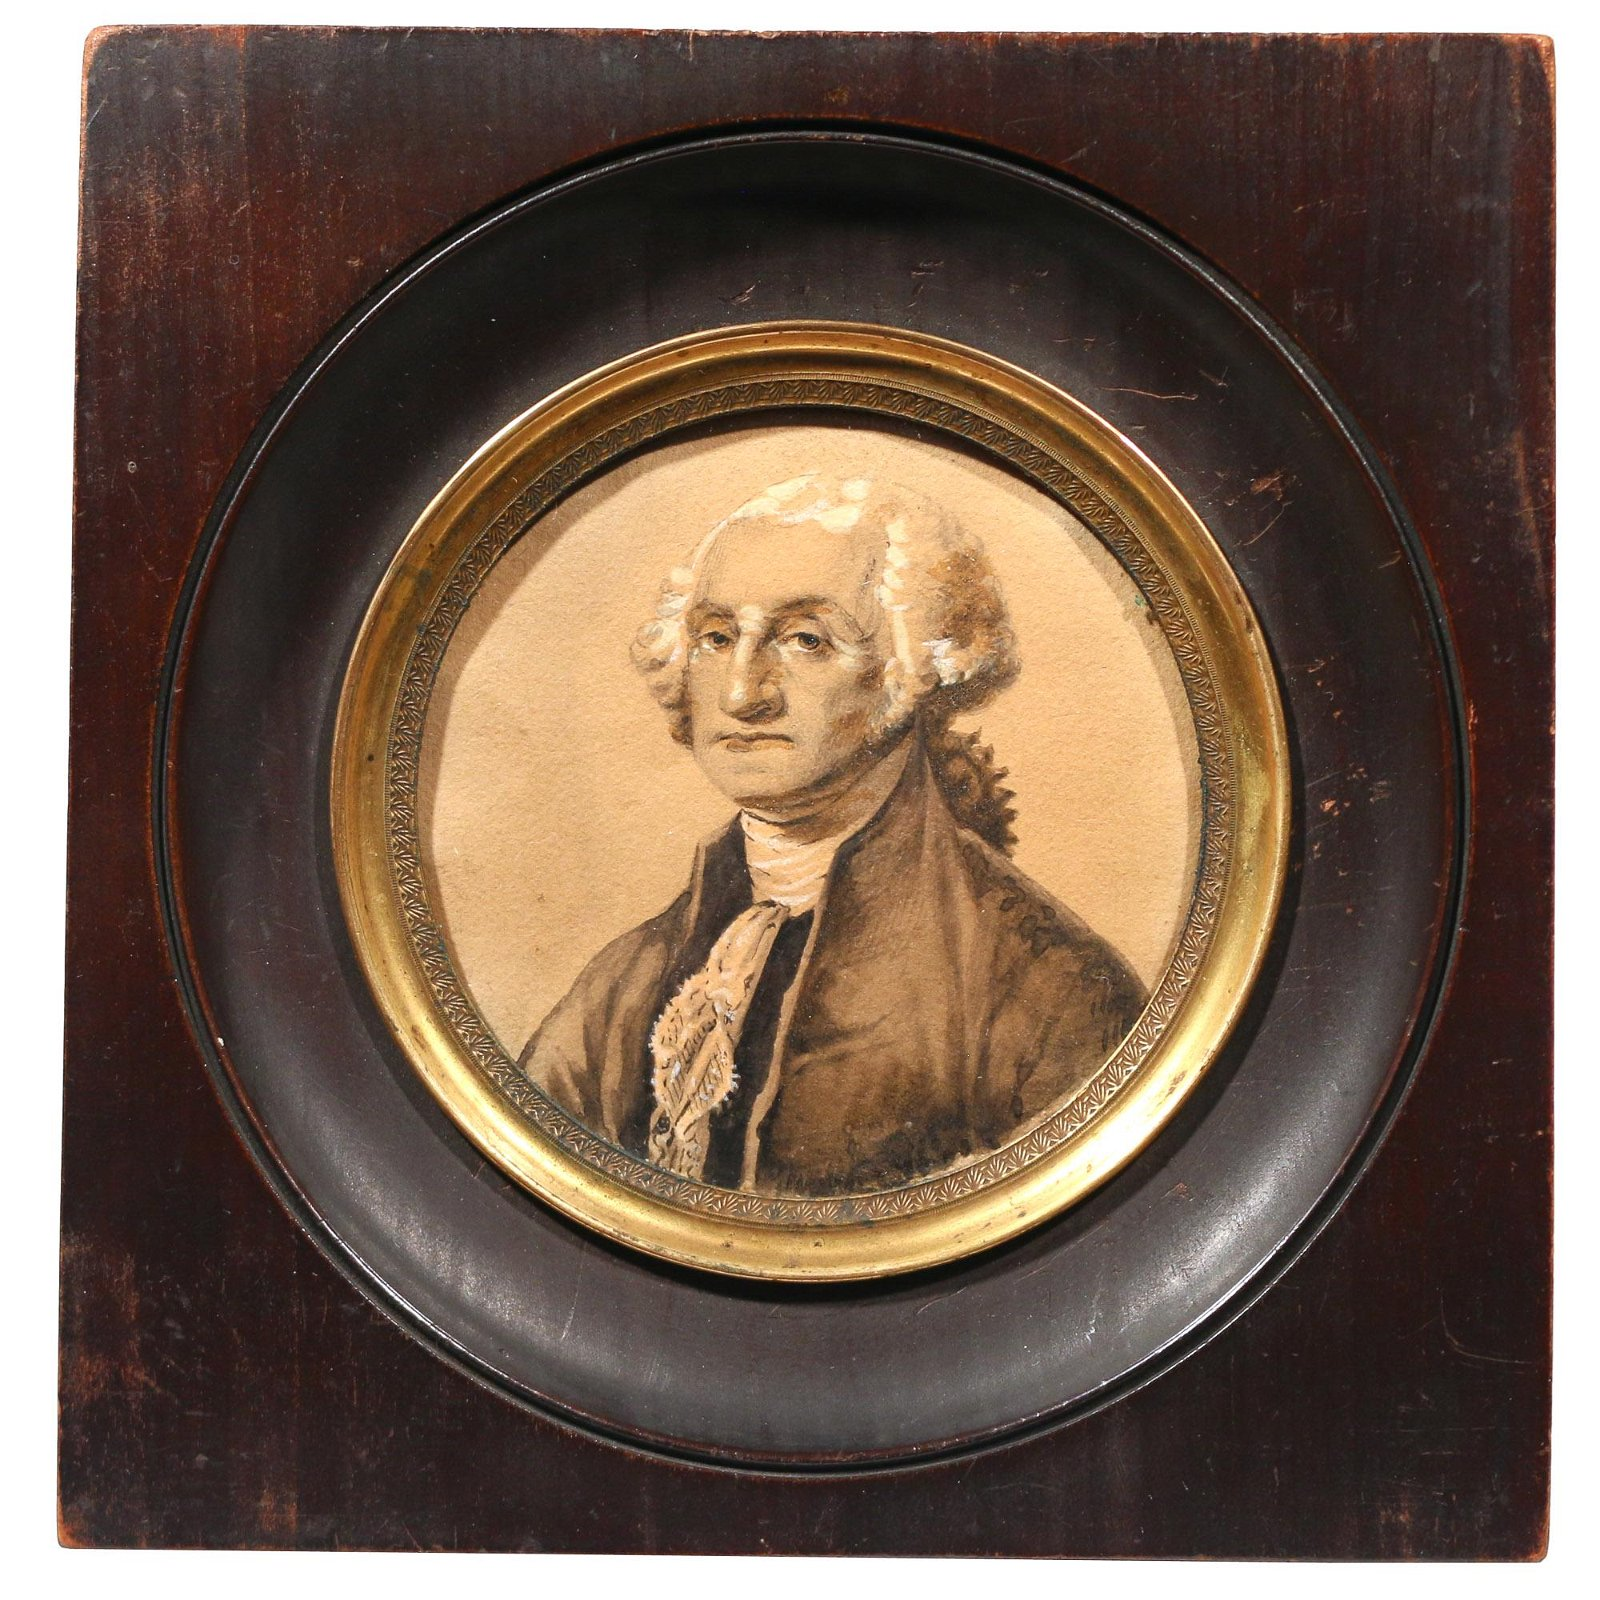 MINIATURE PORTRAIT OF GEORGE WASHINGTON